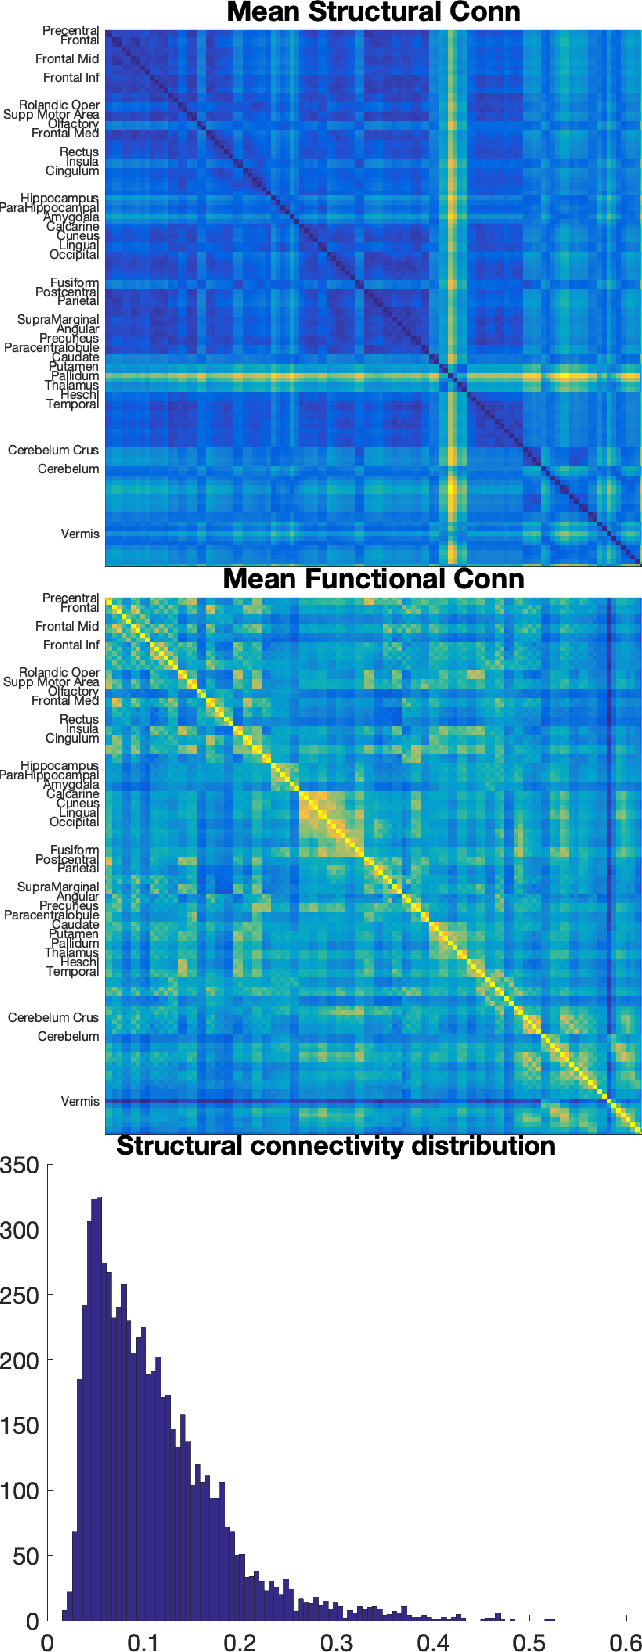 Figure 2 for Single-participant structural connectivity matrices lead to greater accuracy in classification of participants than function in autism in MRI